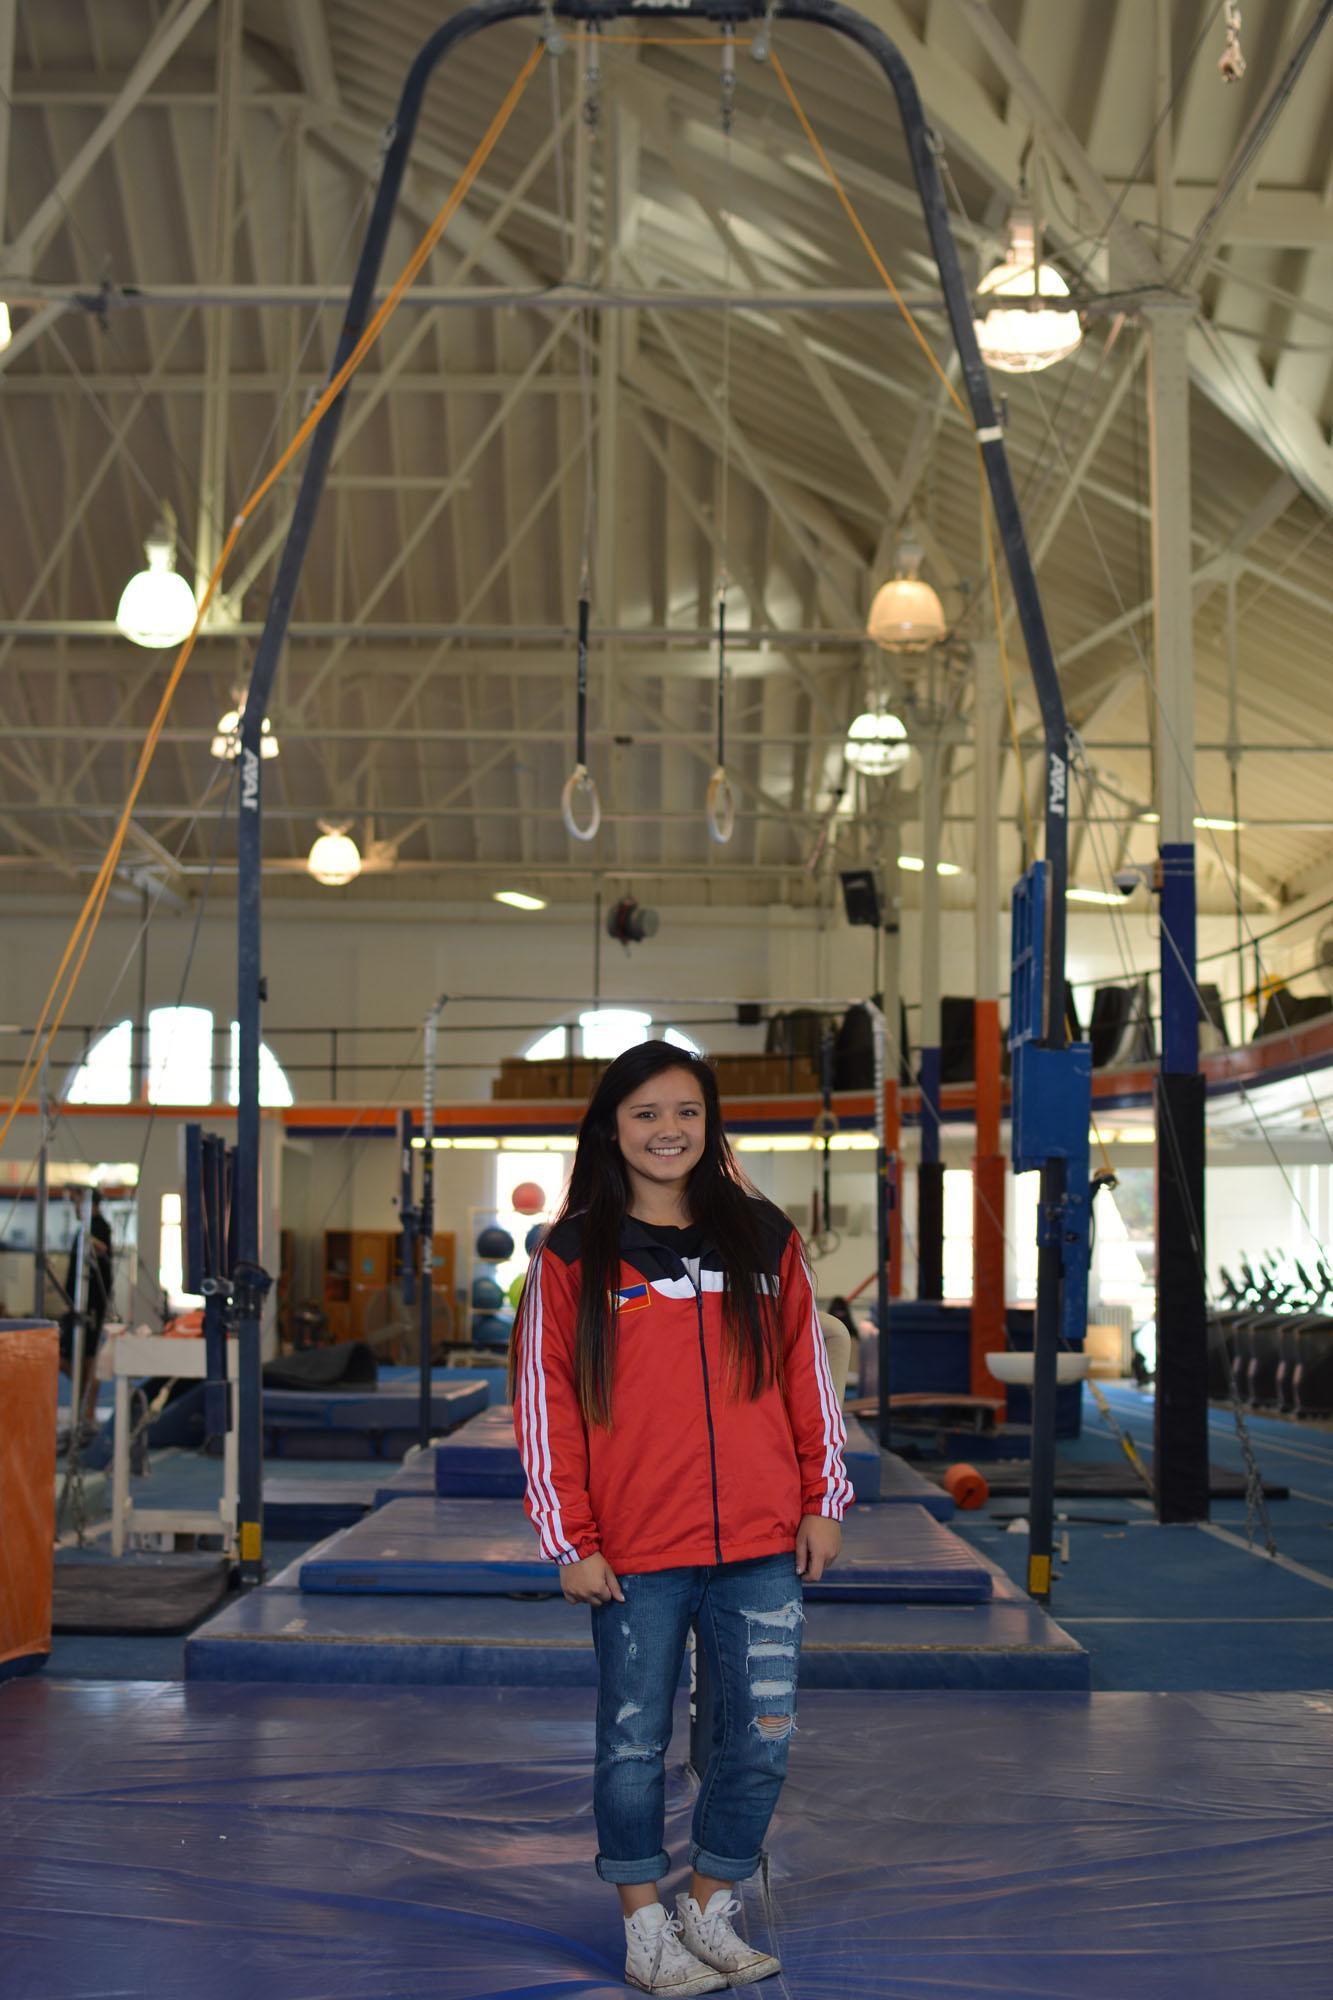 Freshman+gymnast+Lizzy+LeDuc+has+had+the+opportunity+to+compete+on+the+Philippine+National+Team+and+now+is+shooting+for+success+as+an+Illini.